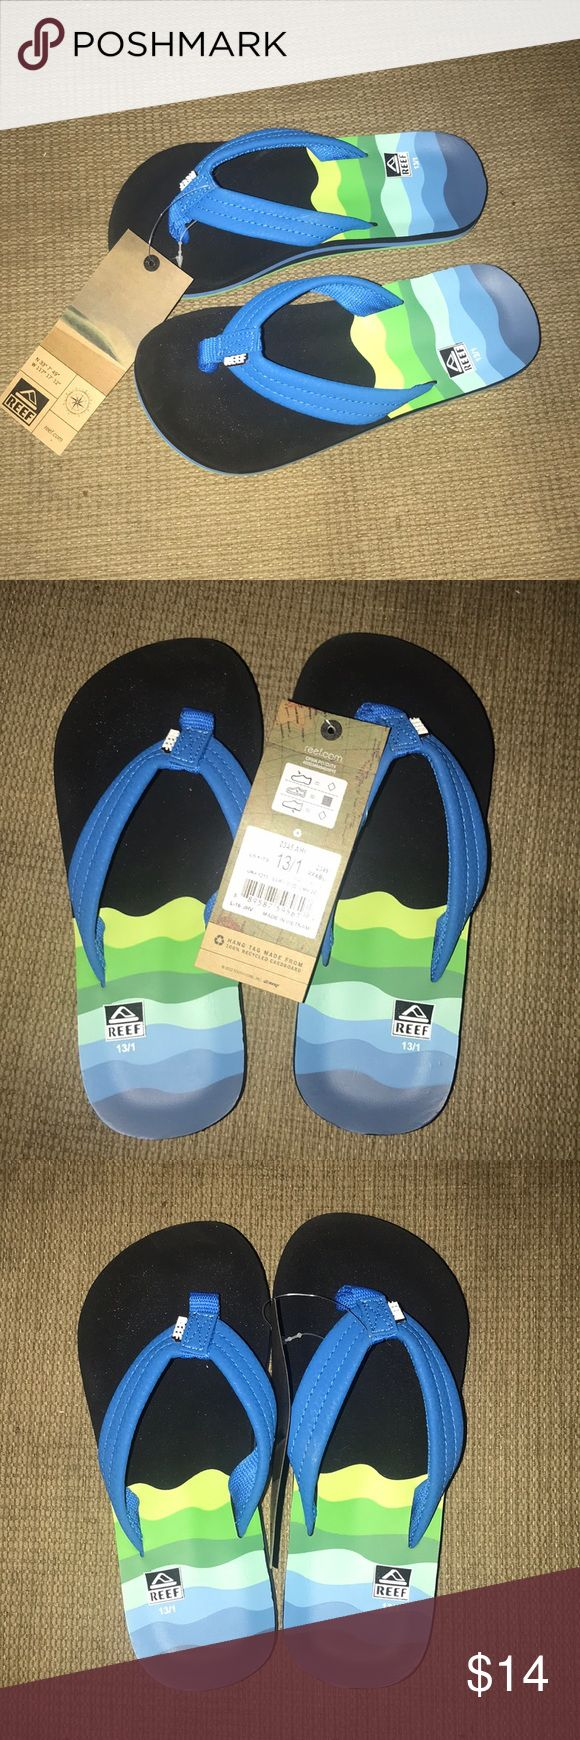 REEF Flip Flops NWT Size 13/1 Boys Sandals Brand New Super cute pair of Boys Reef flip flops in size 13/1. Never worn! Reef Shoes Sandals & Flip Flops